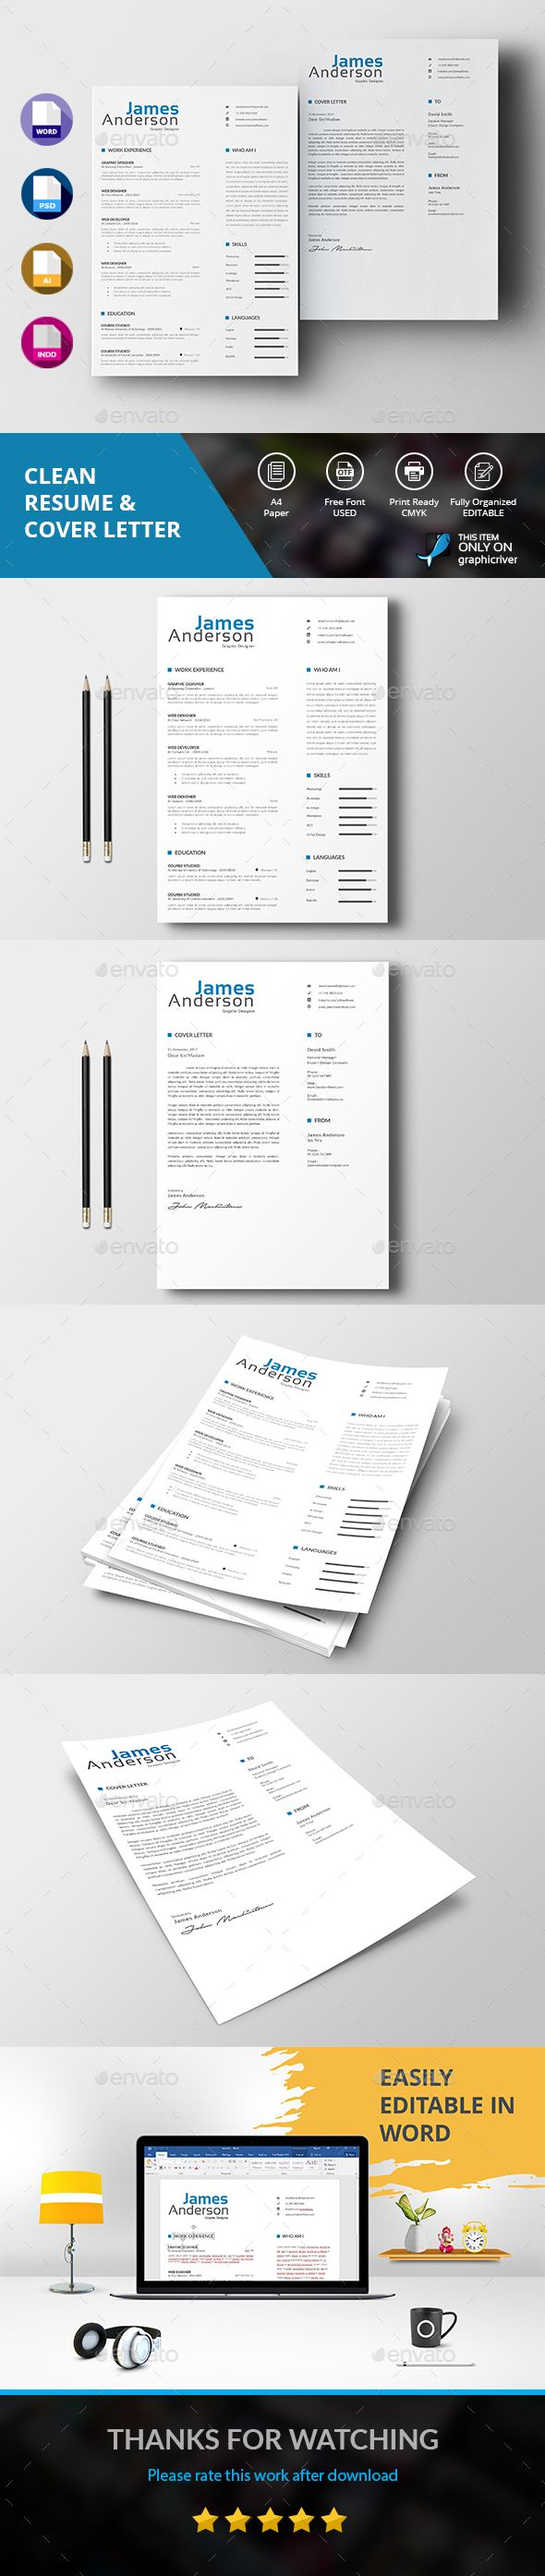 best ideas about resume cover letters perfect resume cover letter